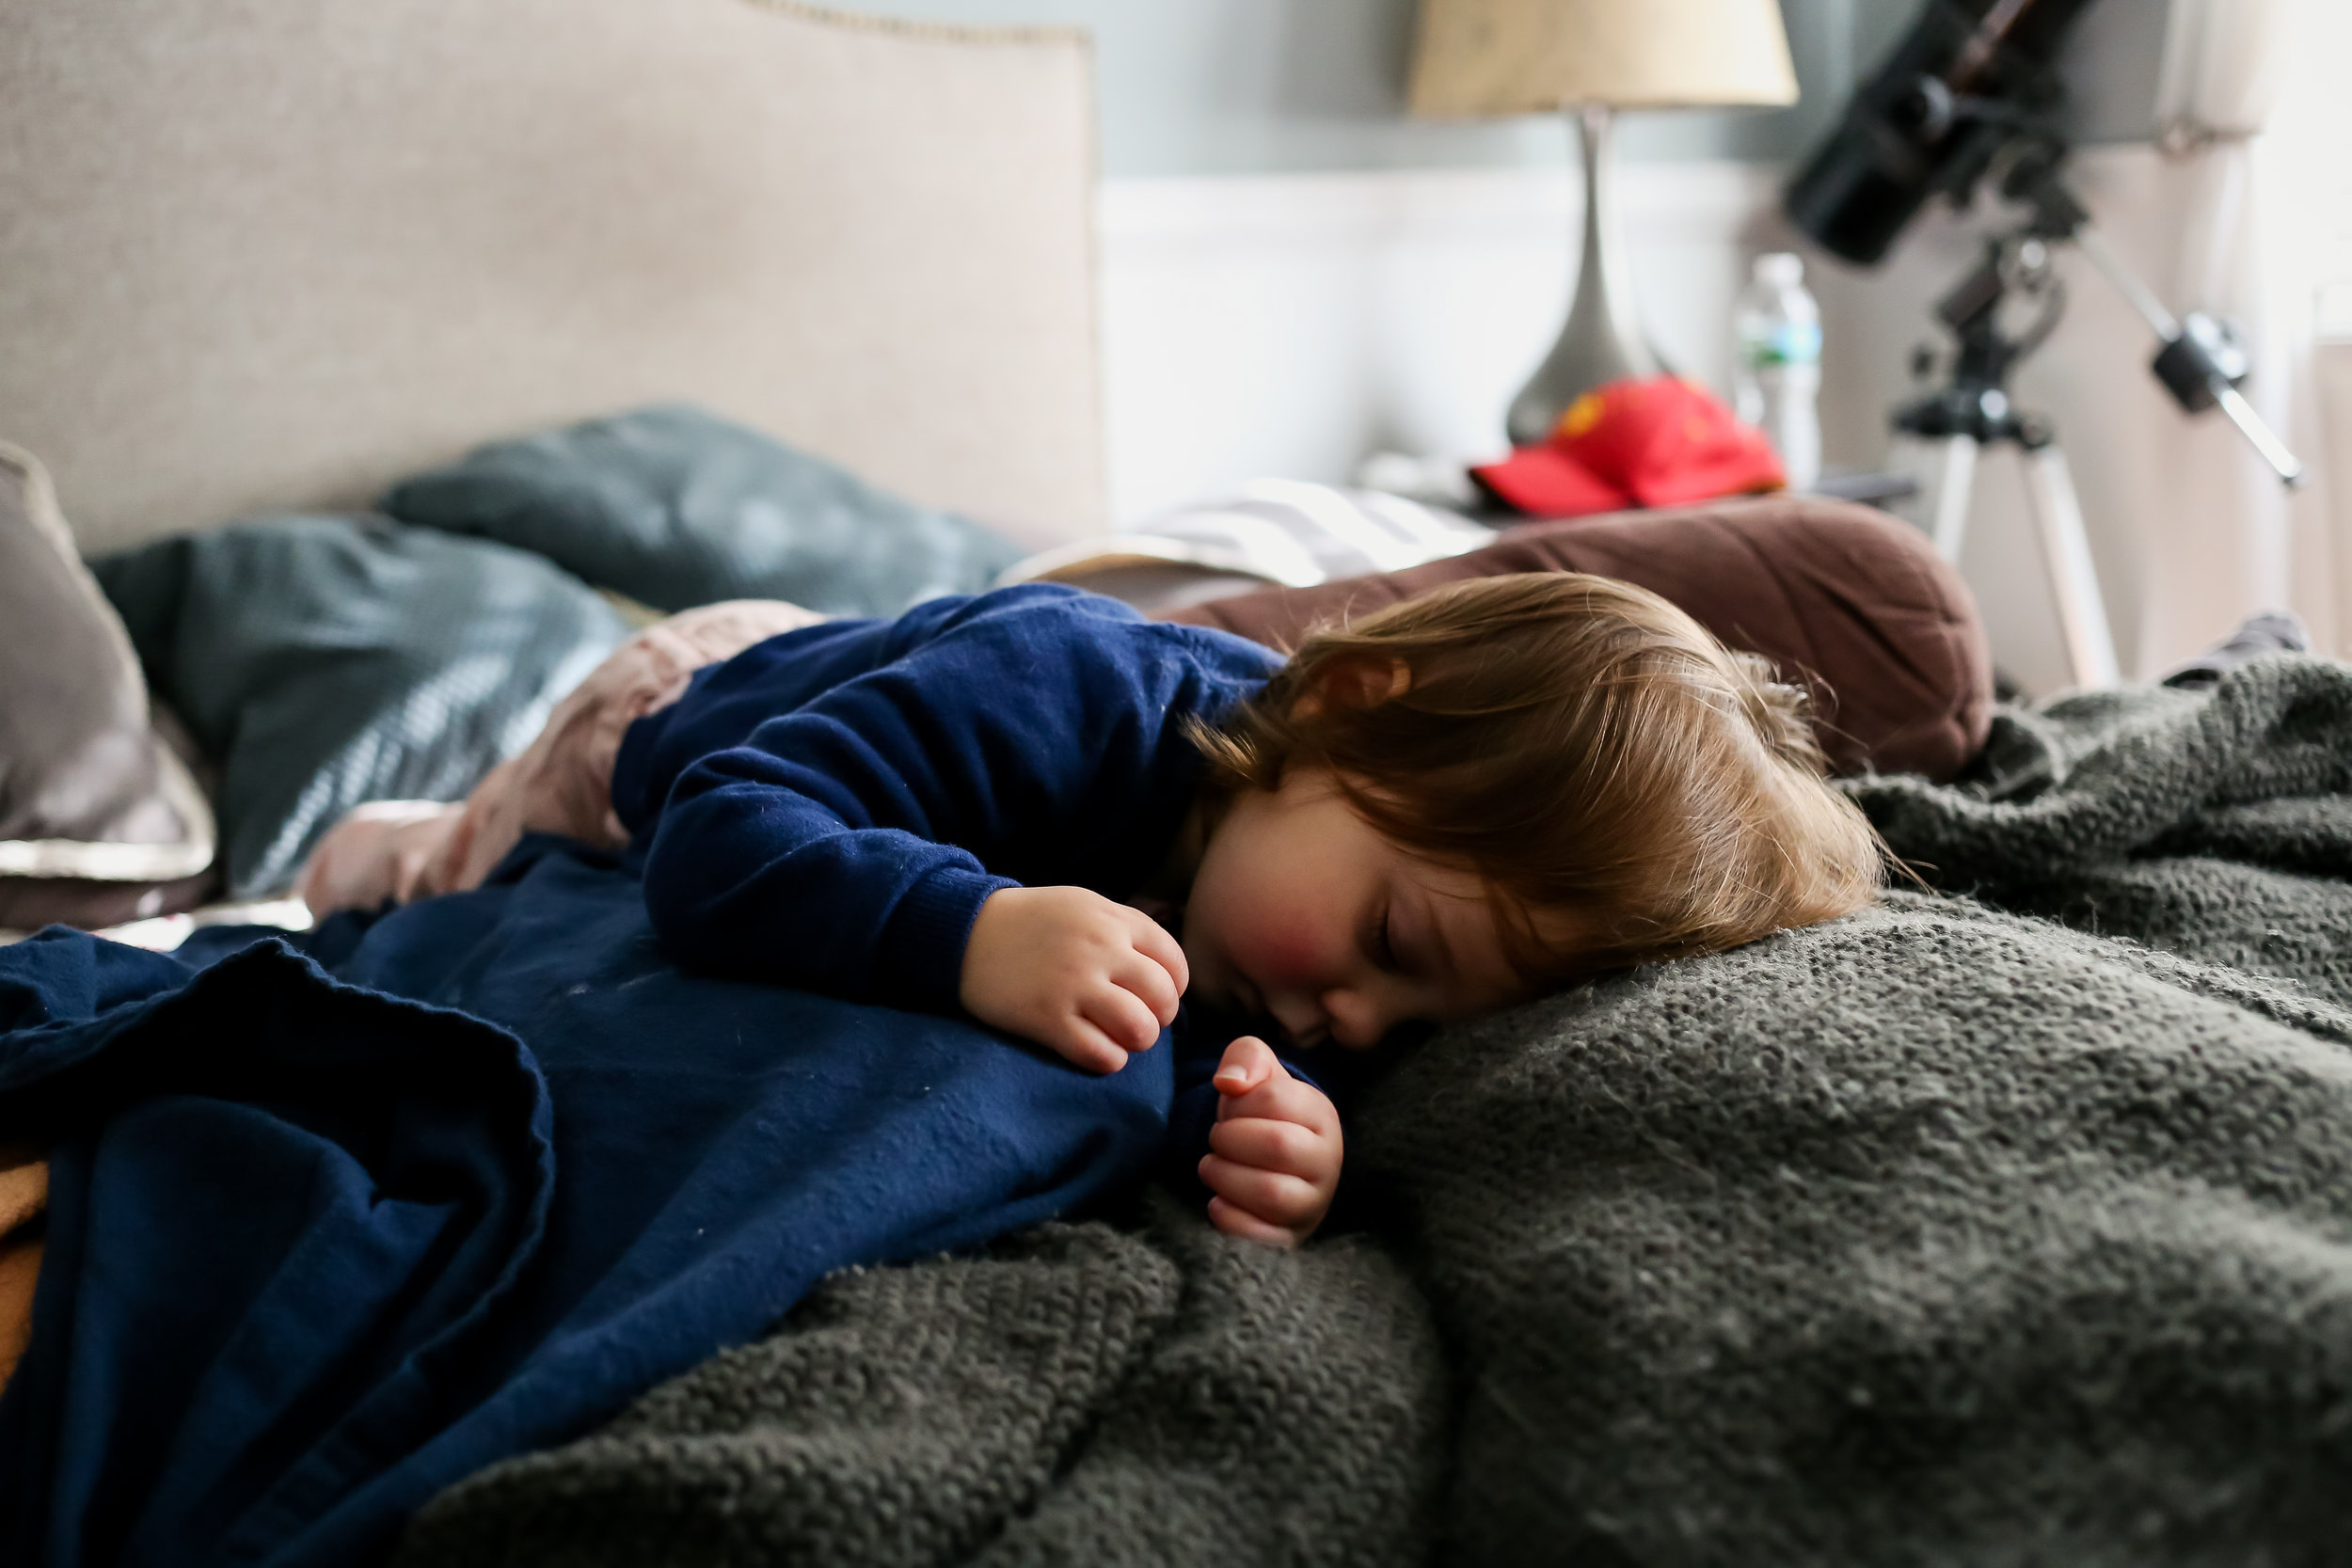 Two year old girl taking a nap on mom and dad's bed. At home candid family photography in Allentown, PA.